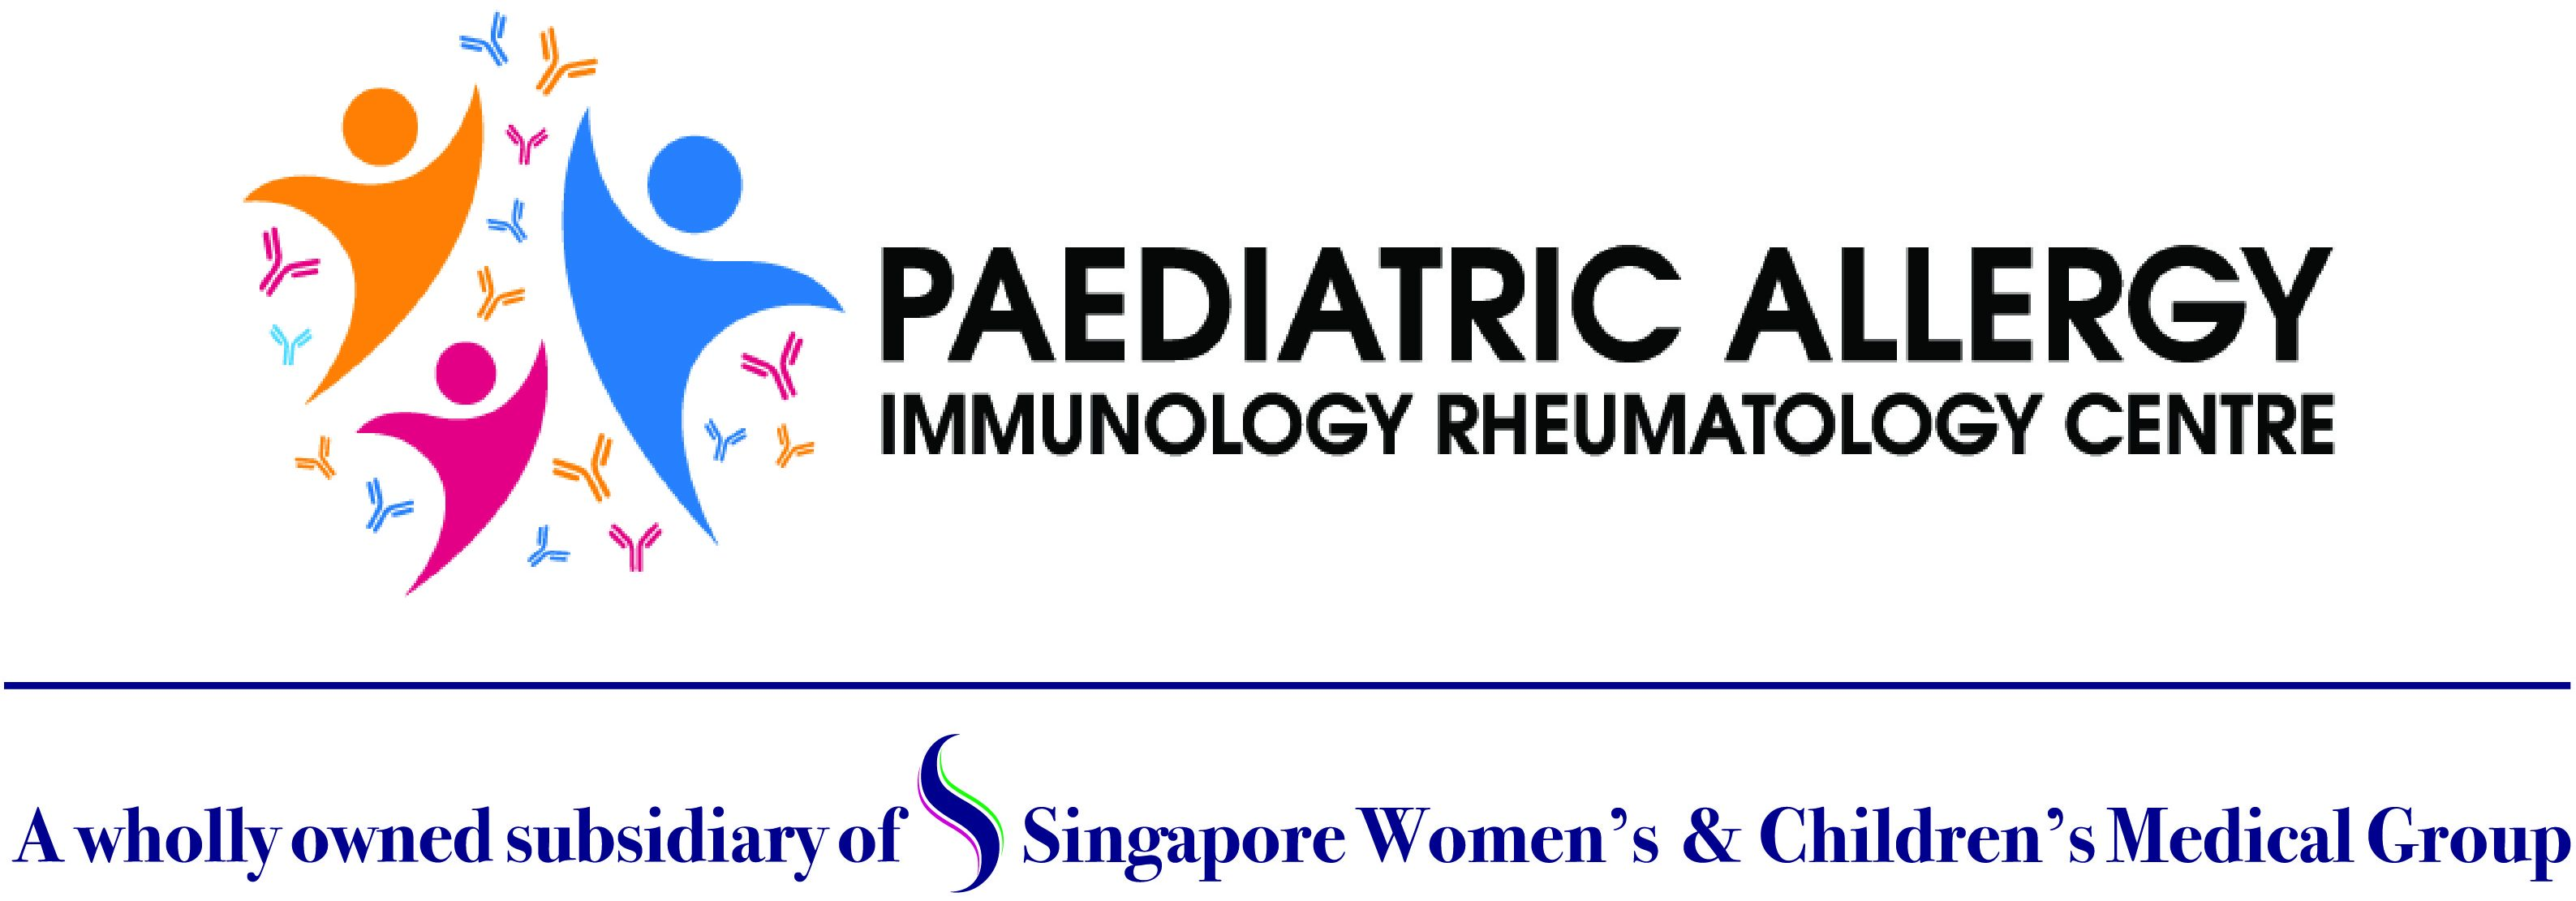 Paediatric Allergy Immunology Rheumatology Centre